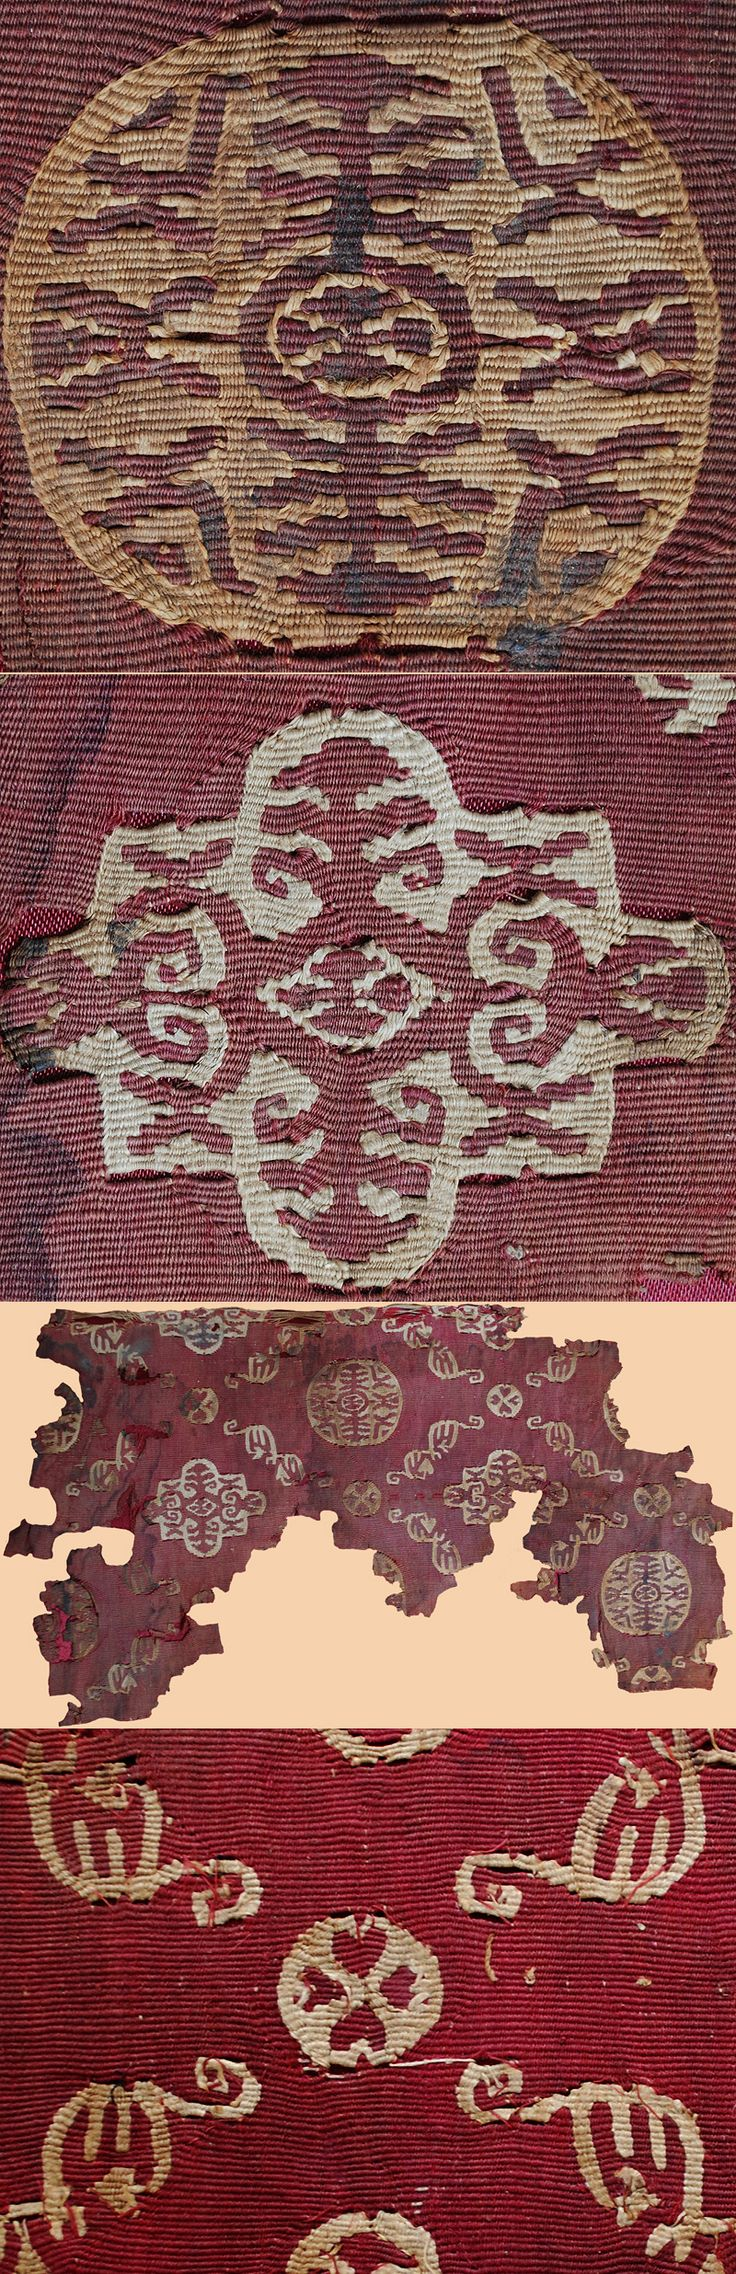 Antique Persian Sassanid Textile. Roundel fragment, ca. 224-651 A.D. Weft-faced slit-tapestry work, with a tan linen warp, and a woollen warp of dyed and undyed threads.